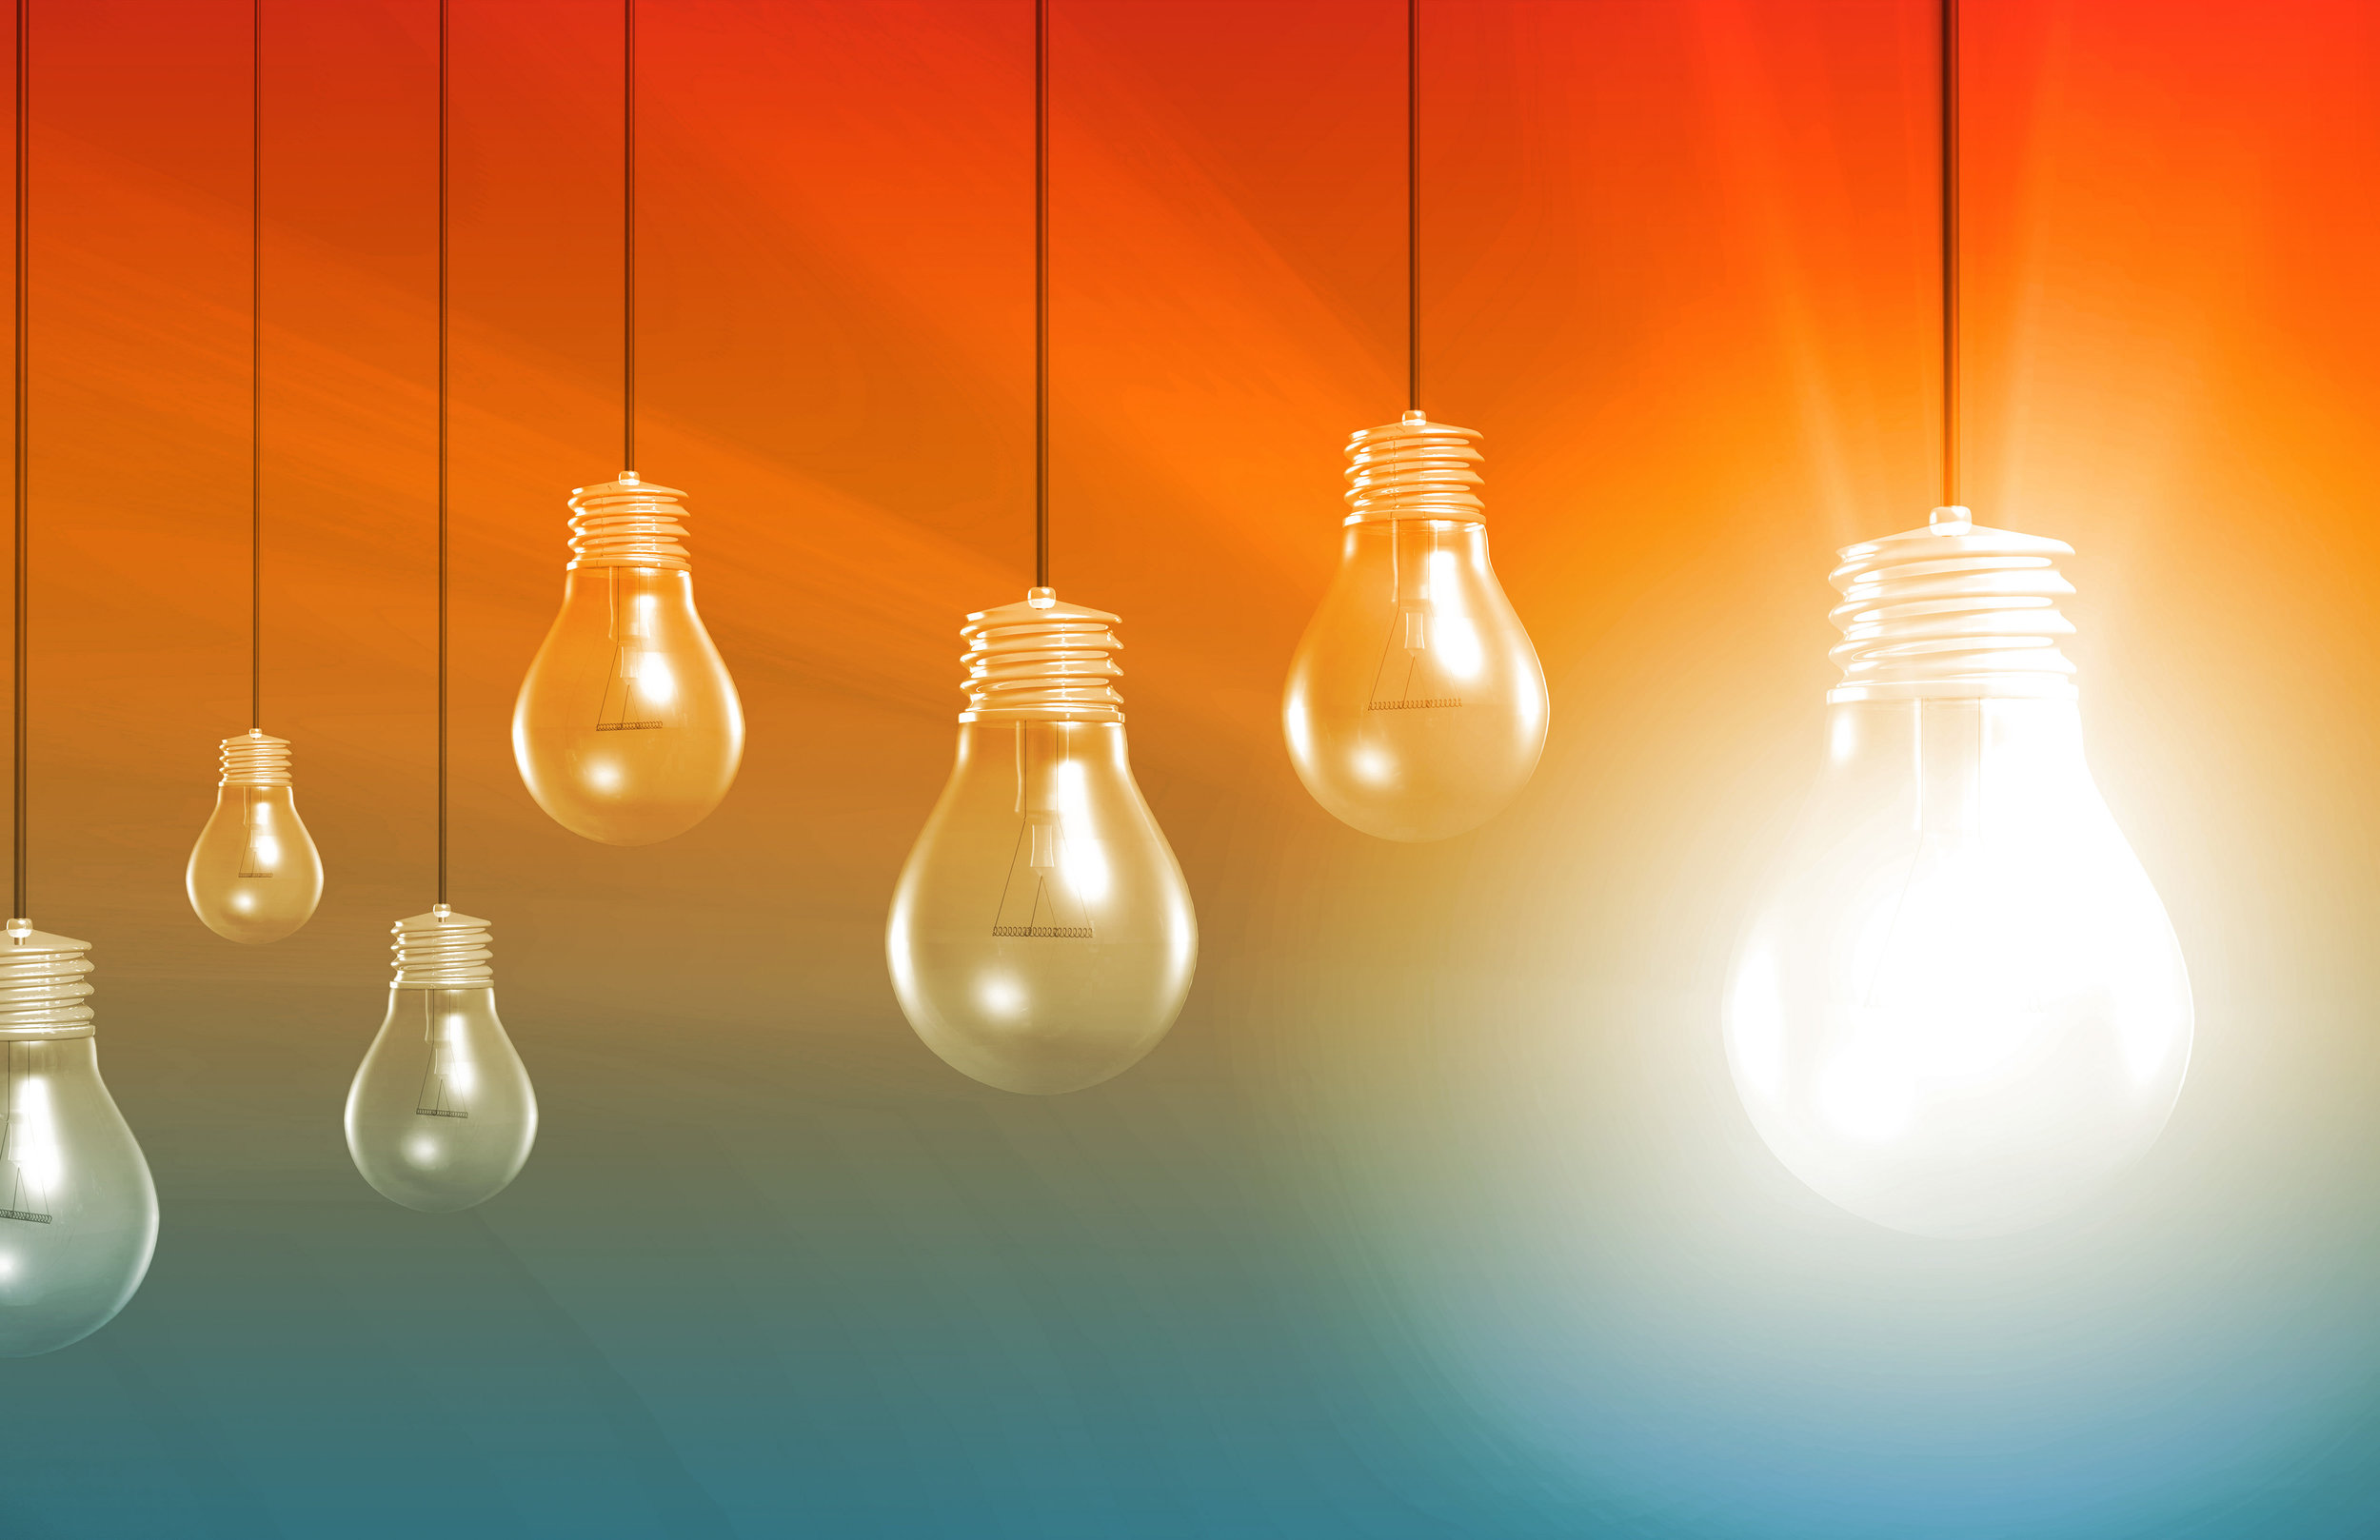 Think in terms of what's possible. - When you think in terms of what's possible, light floods your mind with opportunities, illuminates connections and creates fusion between ideas and strategies, systems and the smarts needed to carry out ideas.